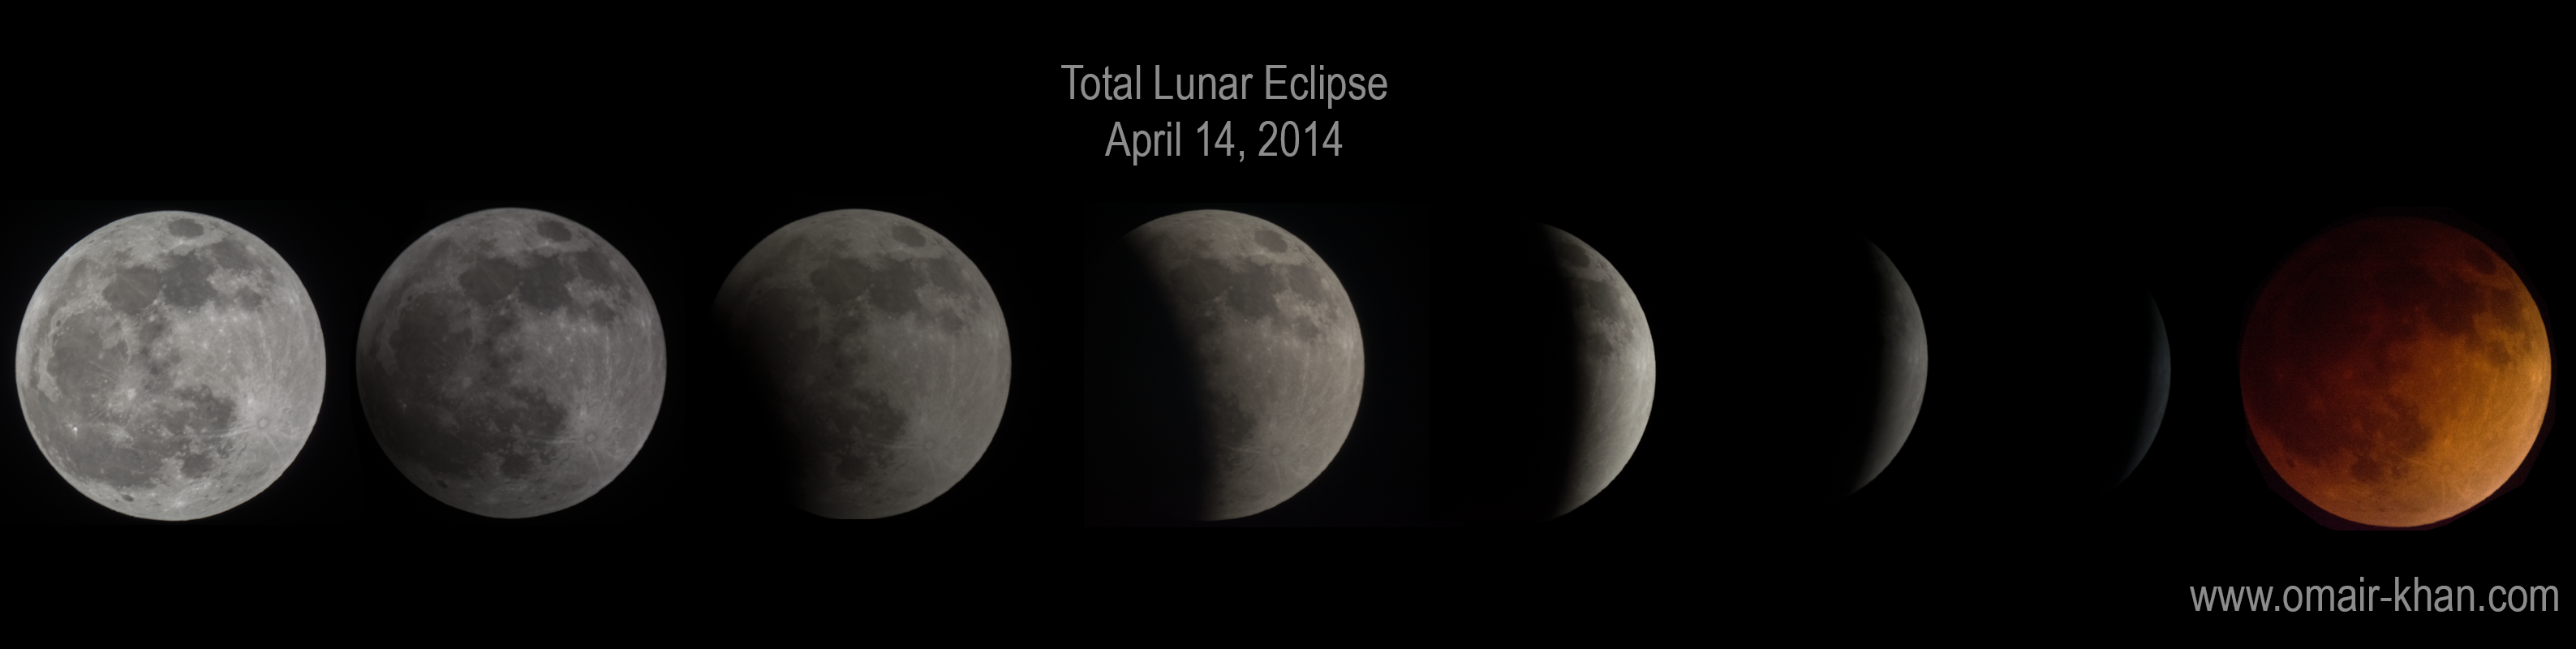 Total Lunar Eclipse Time Line